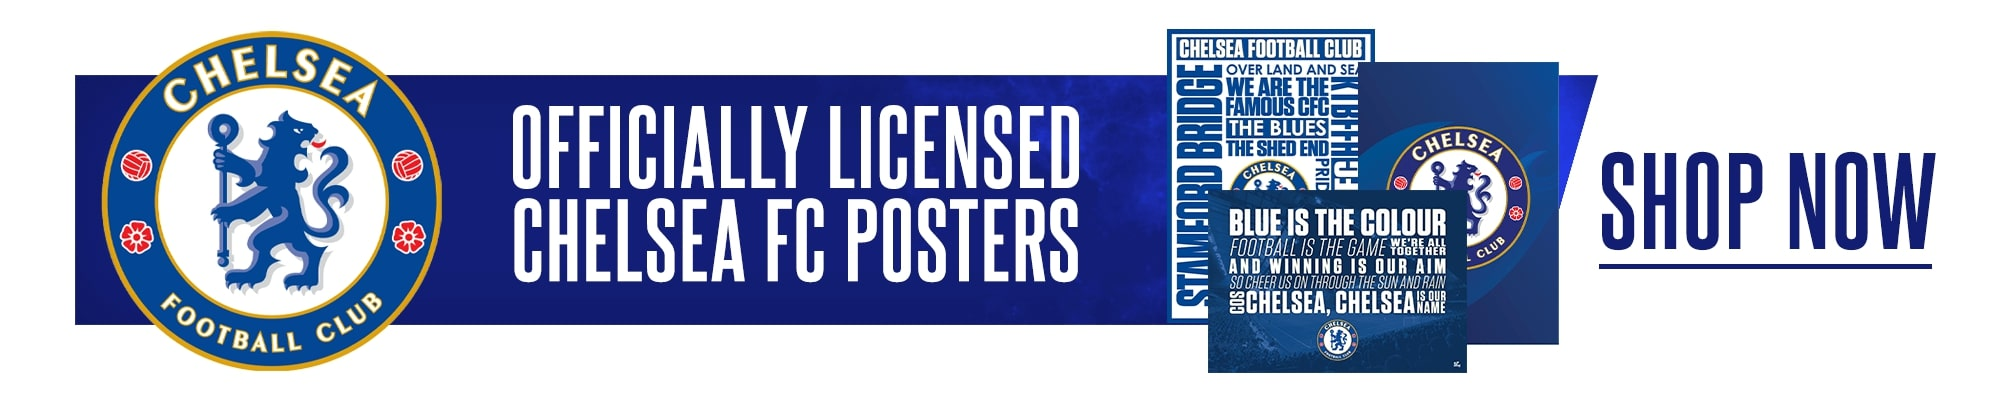 Official Chelsea Posters